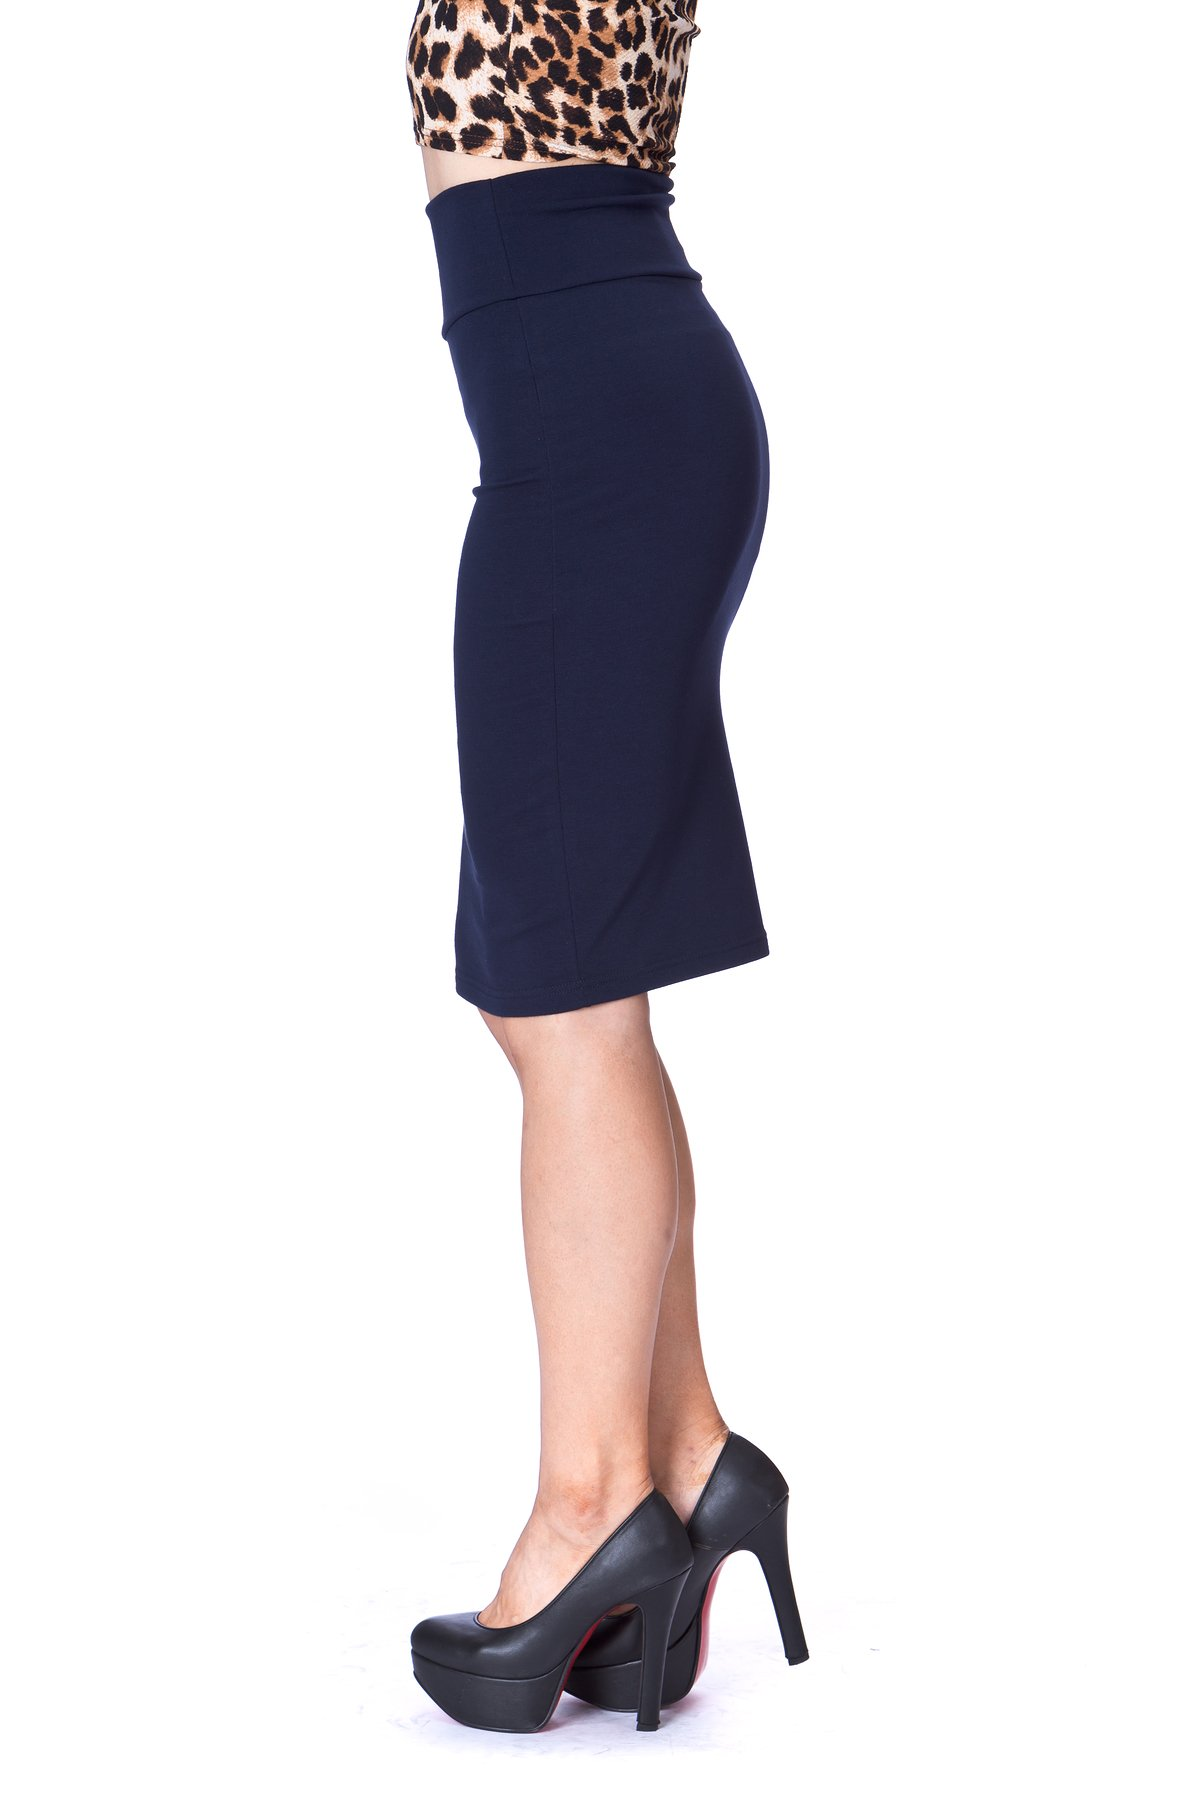 Every Occasion Stretch Pull on Wide High Waist Bodycon Pencil Knee Length Midi Skirt Navy 5